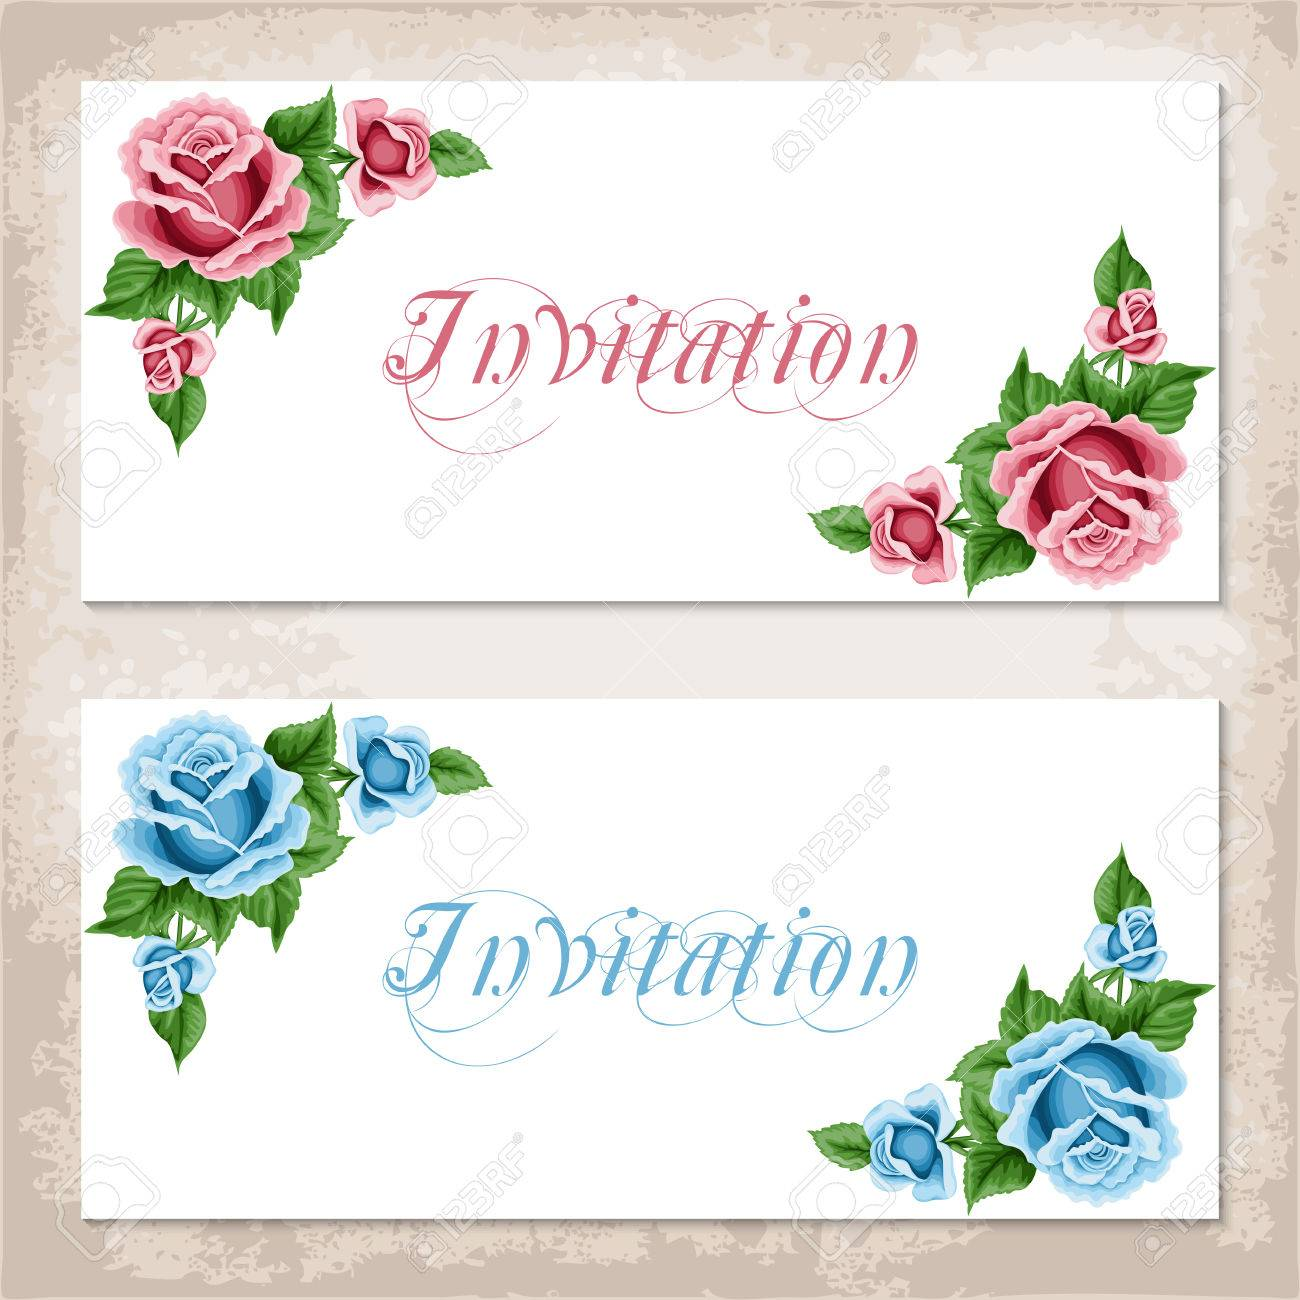 Vintage Invitation Template With Roses. Shabby Chic. Vector ...